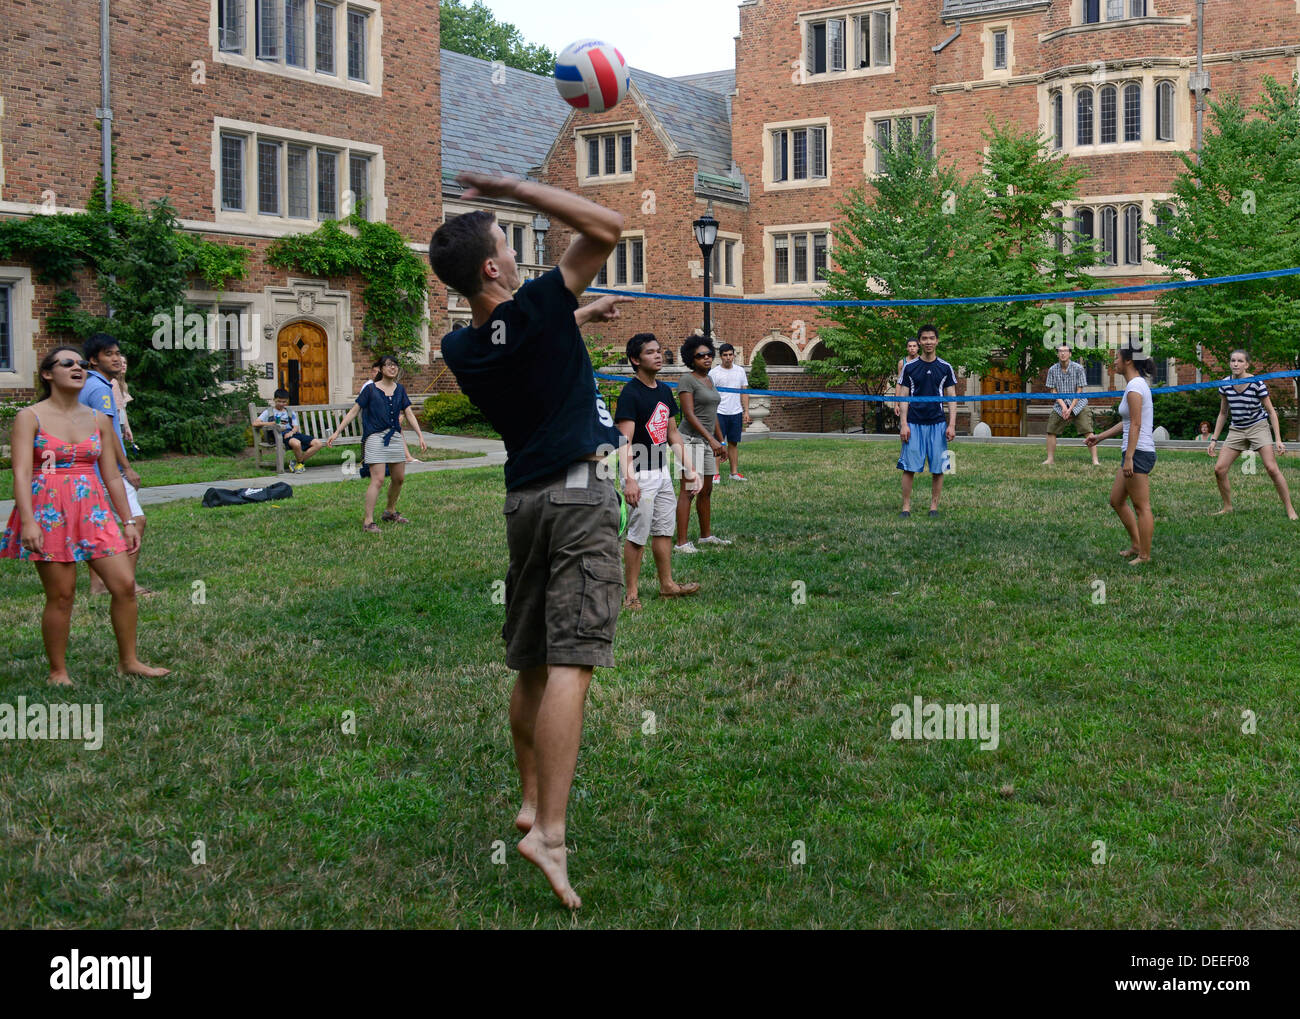 Yale University students at summer school play pick up volleyball after dinner at Calhoun Residential College. - Stock Image